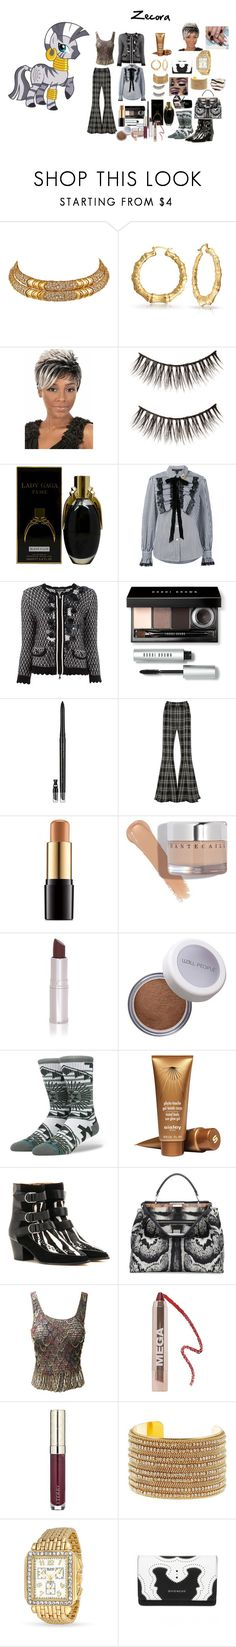 """My Little Pony: Zecora"" by mimi-world on Polyvore featuring Marina B, Bling Jewelry, Marc Jacobs, Twin-Set, Bobbi Brown Cosmetics, Estée Lauder, Beaufille, Lancôme, Chantecaille and VMV Hypoallergenics"